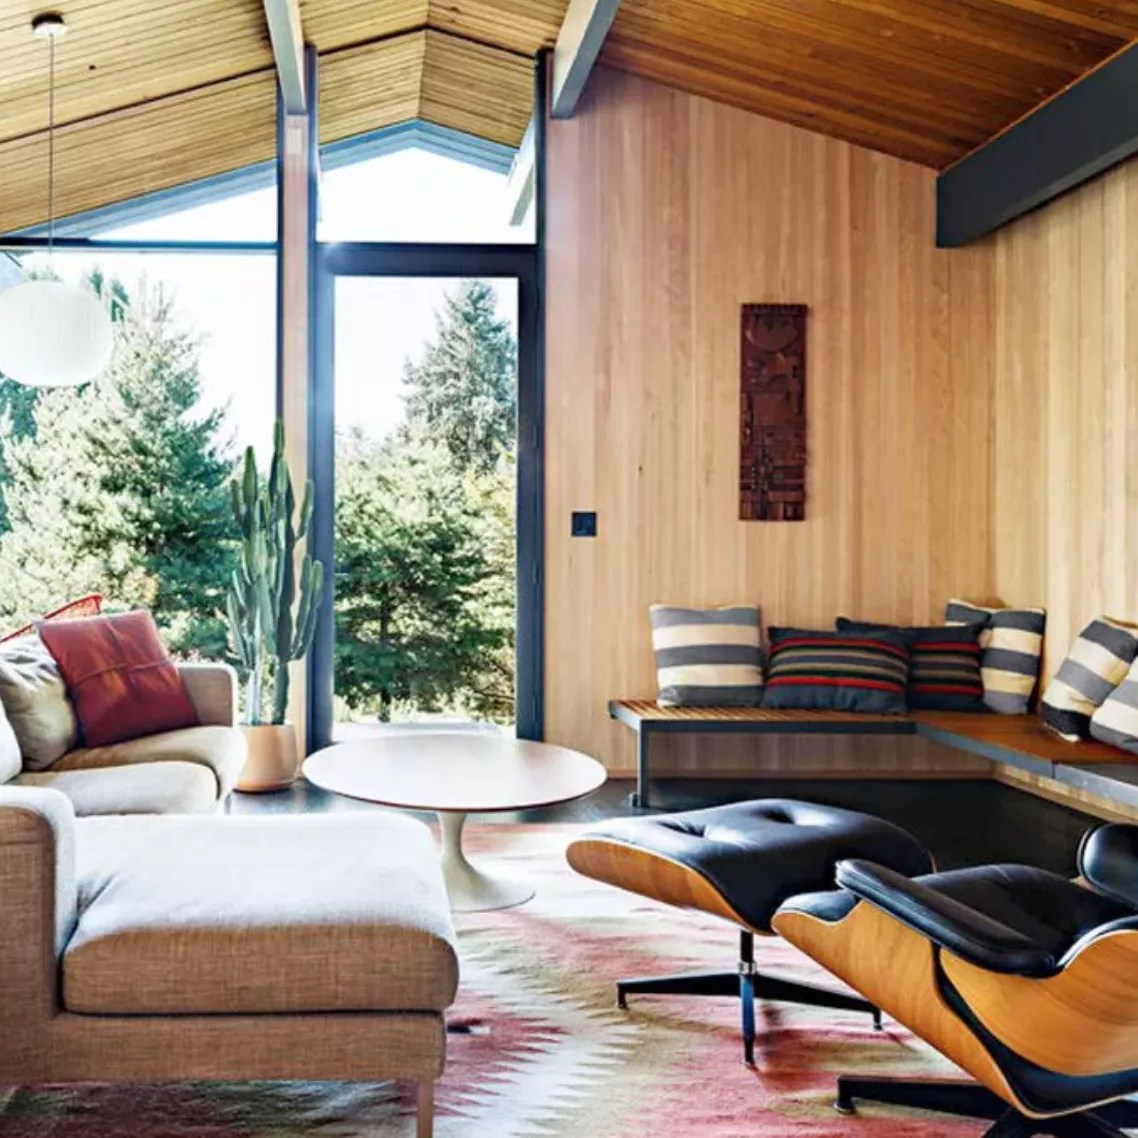 Living room features wood-paneled walls and A-frame roof